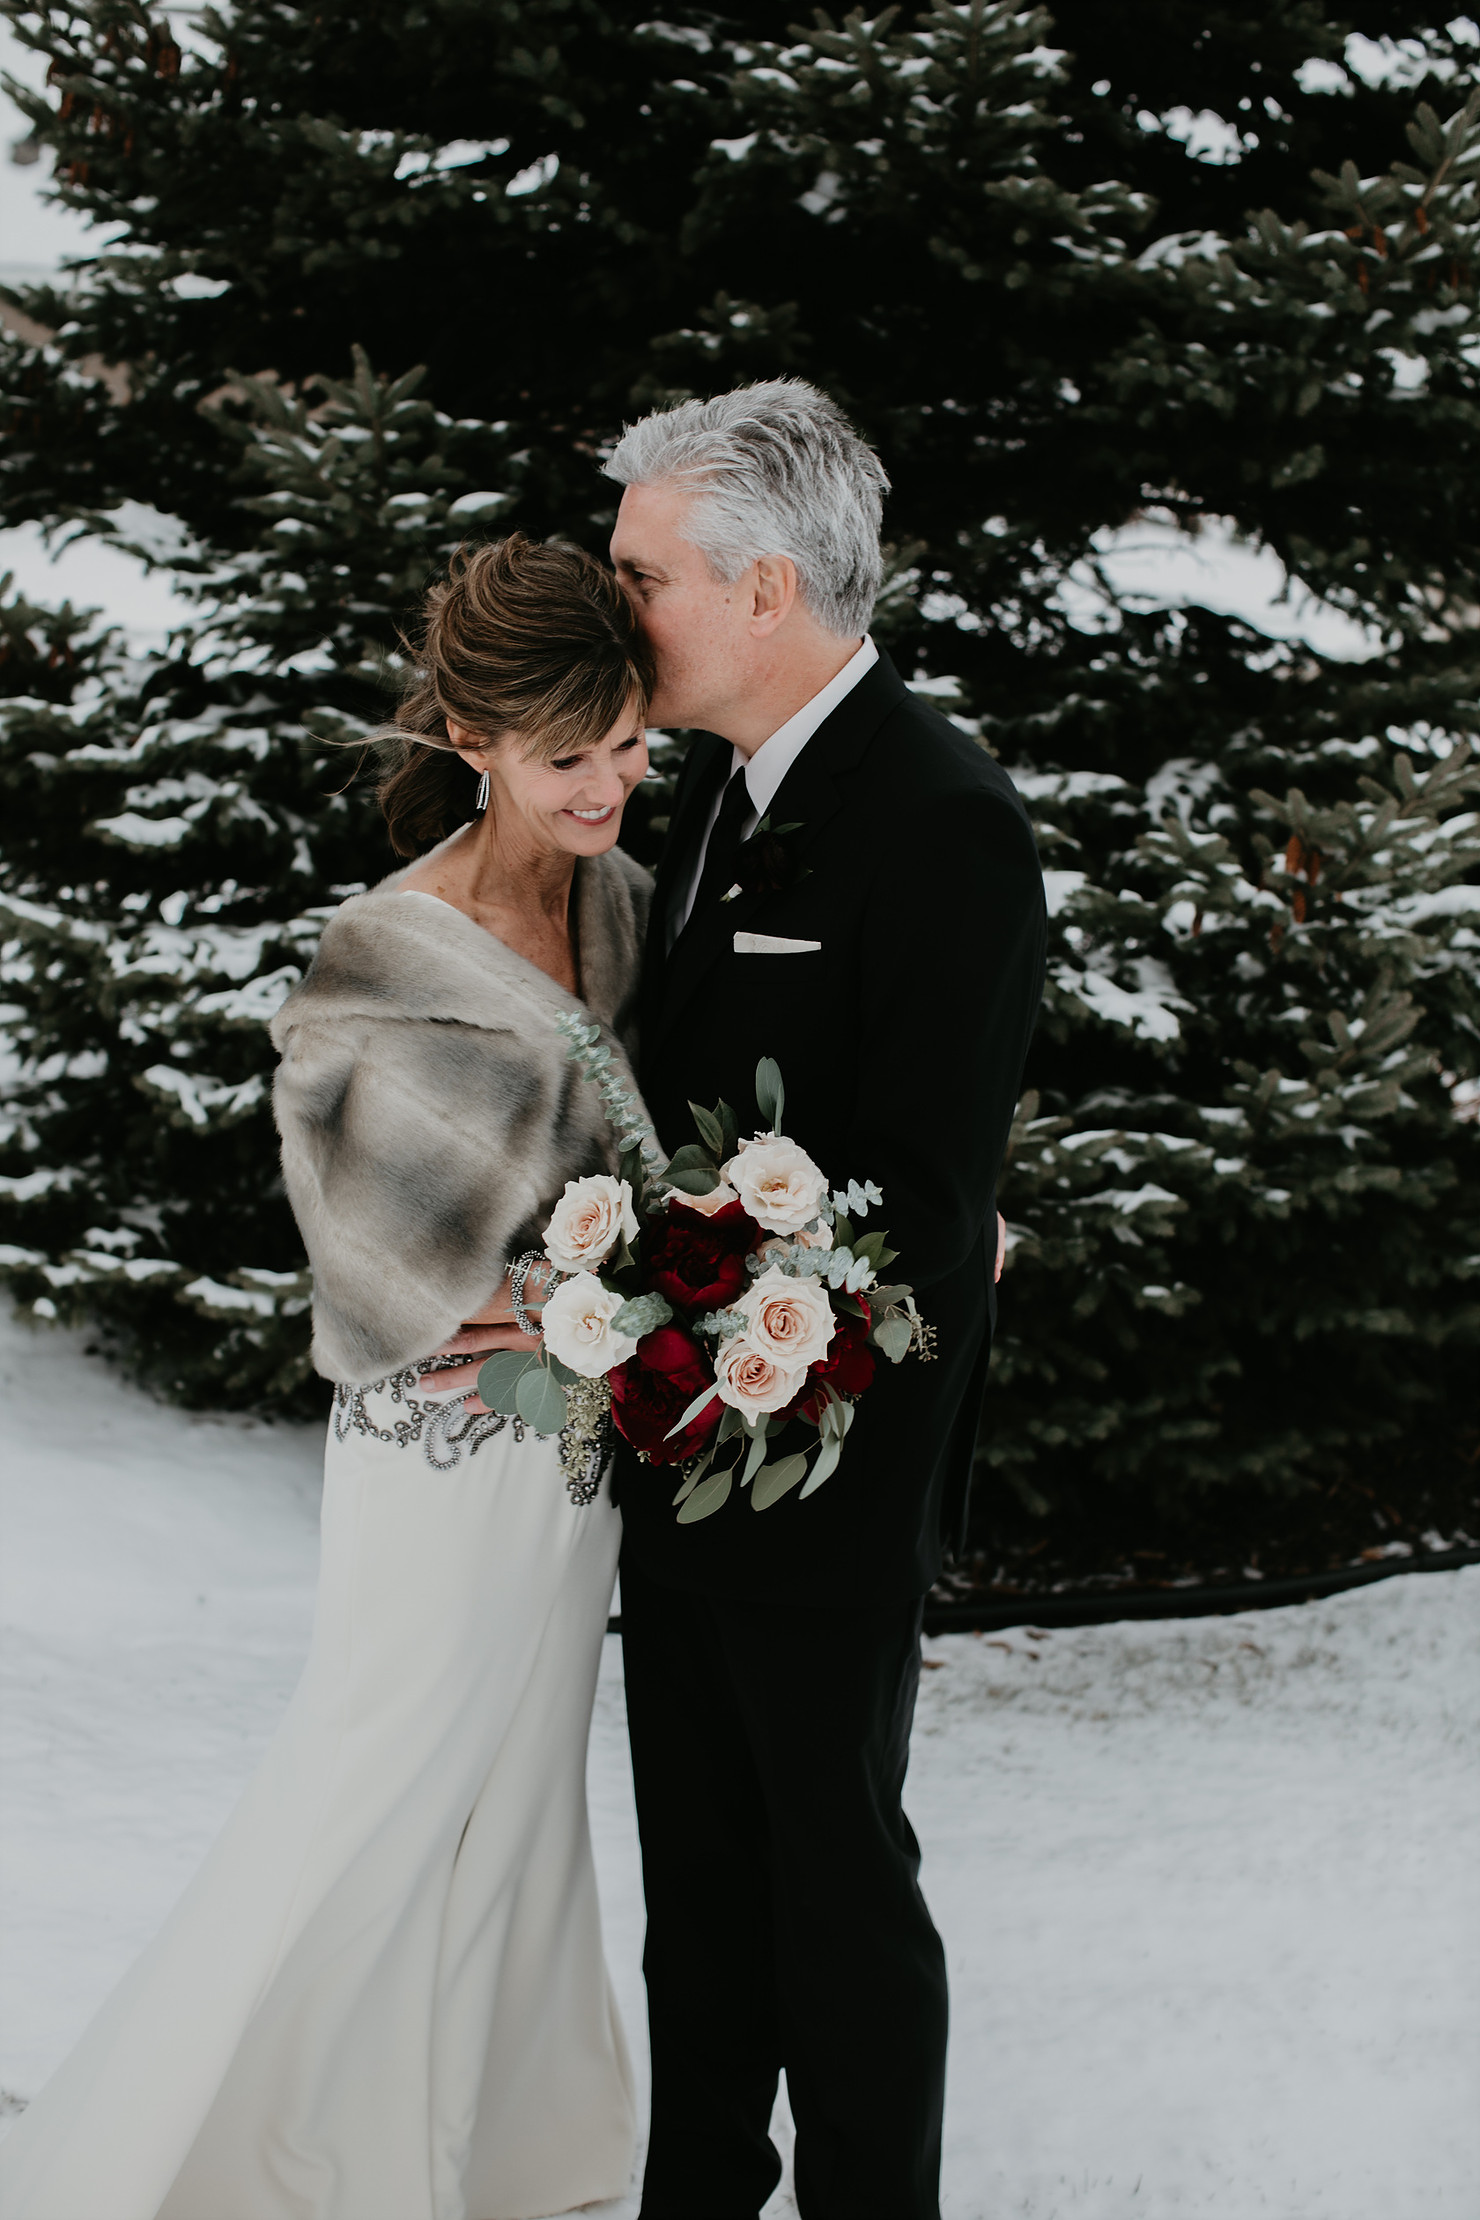 Teresa & Jim Married 12/01/18 at The Four Seasons of Rush Creek | Photography by    Sophisticated Grace